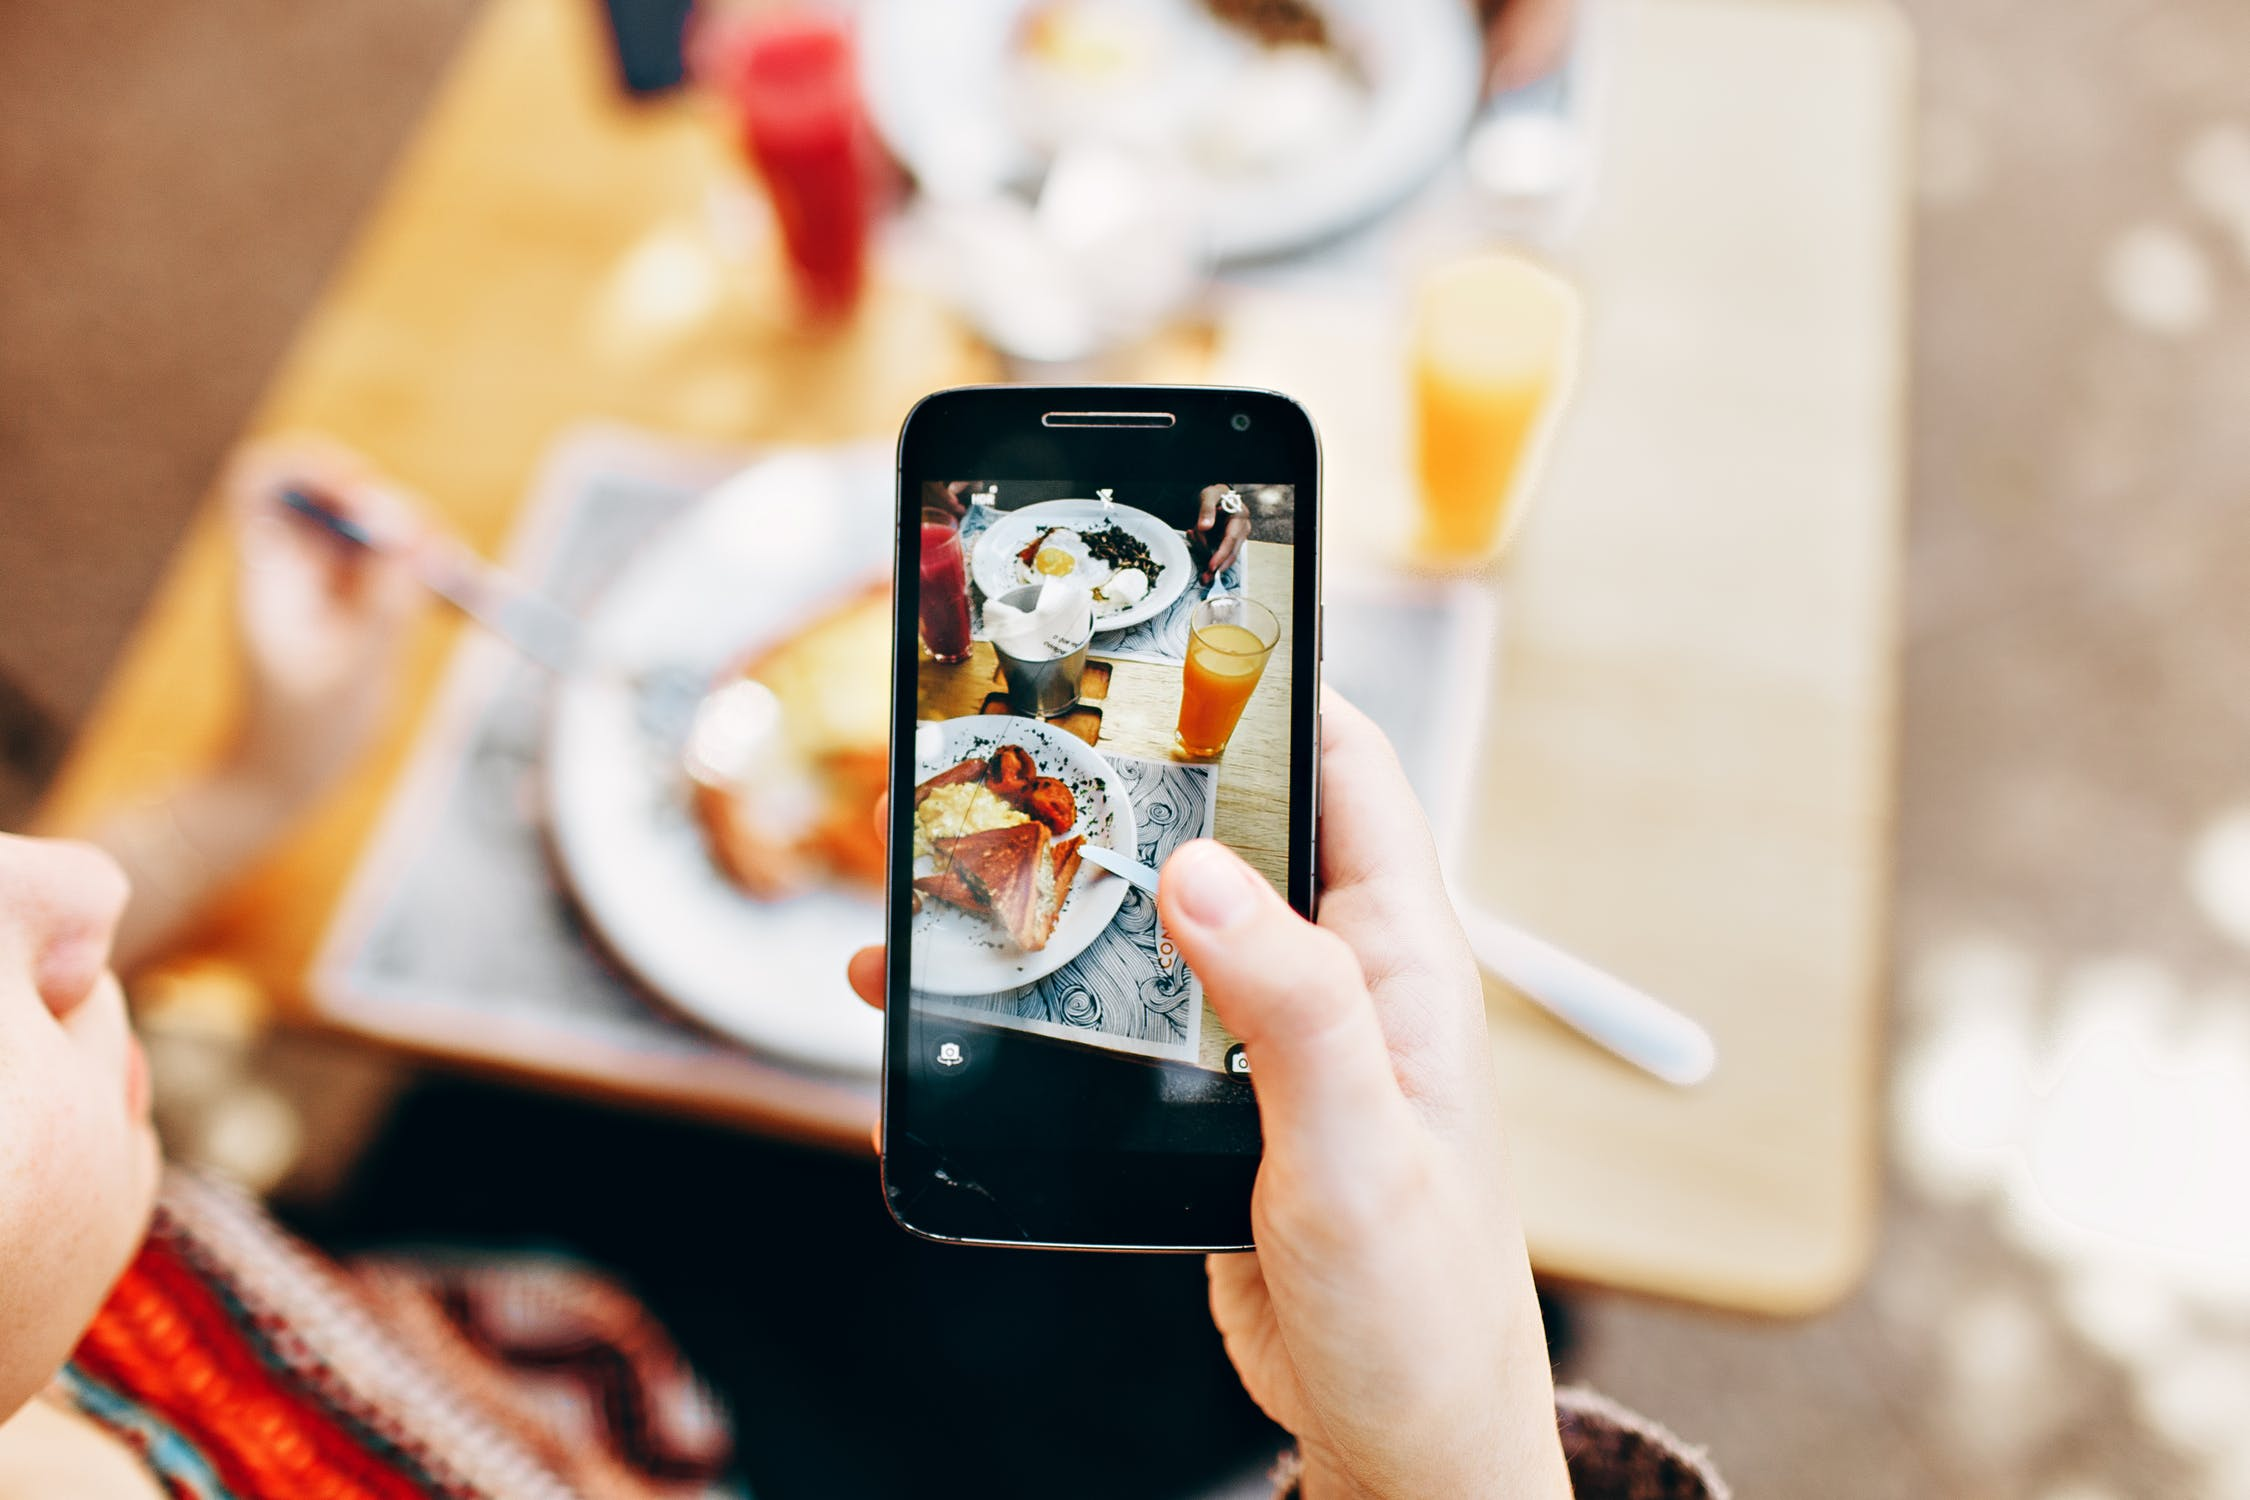 1st person view of someone taking a picture of their food with a smartphone at a restaurant